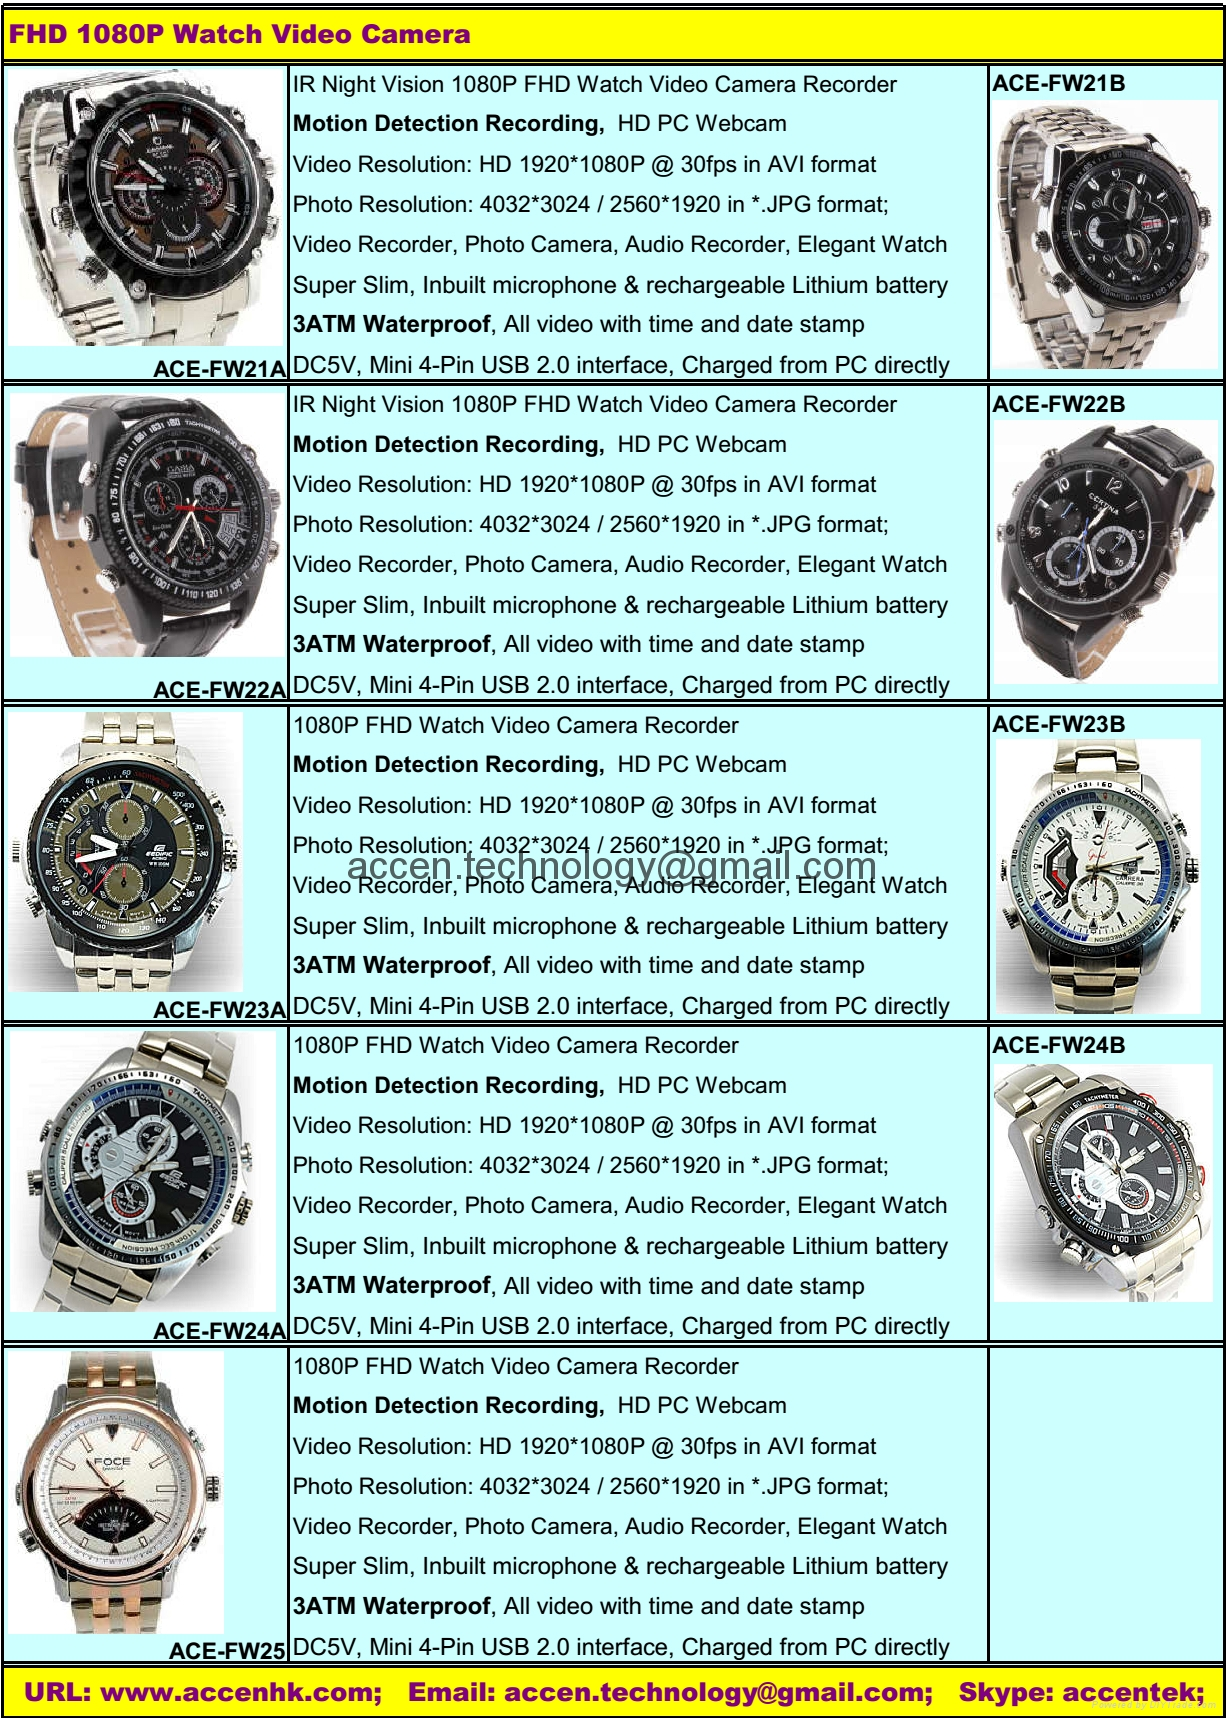 8GB/16GB 1080P FHD Spy Waterproof Water-Resistant Wrist Watch Video Camera Recorder Catalog